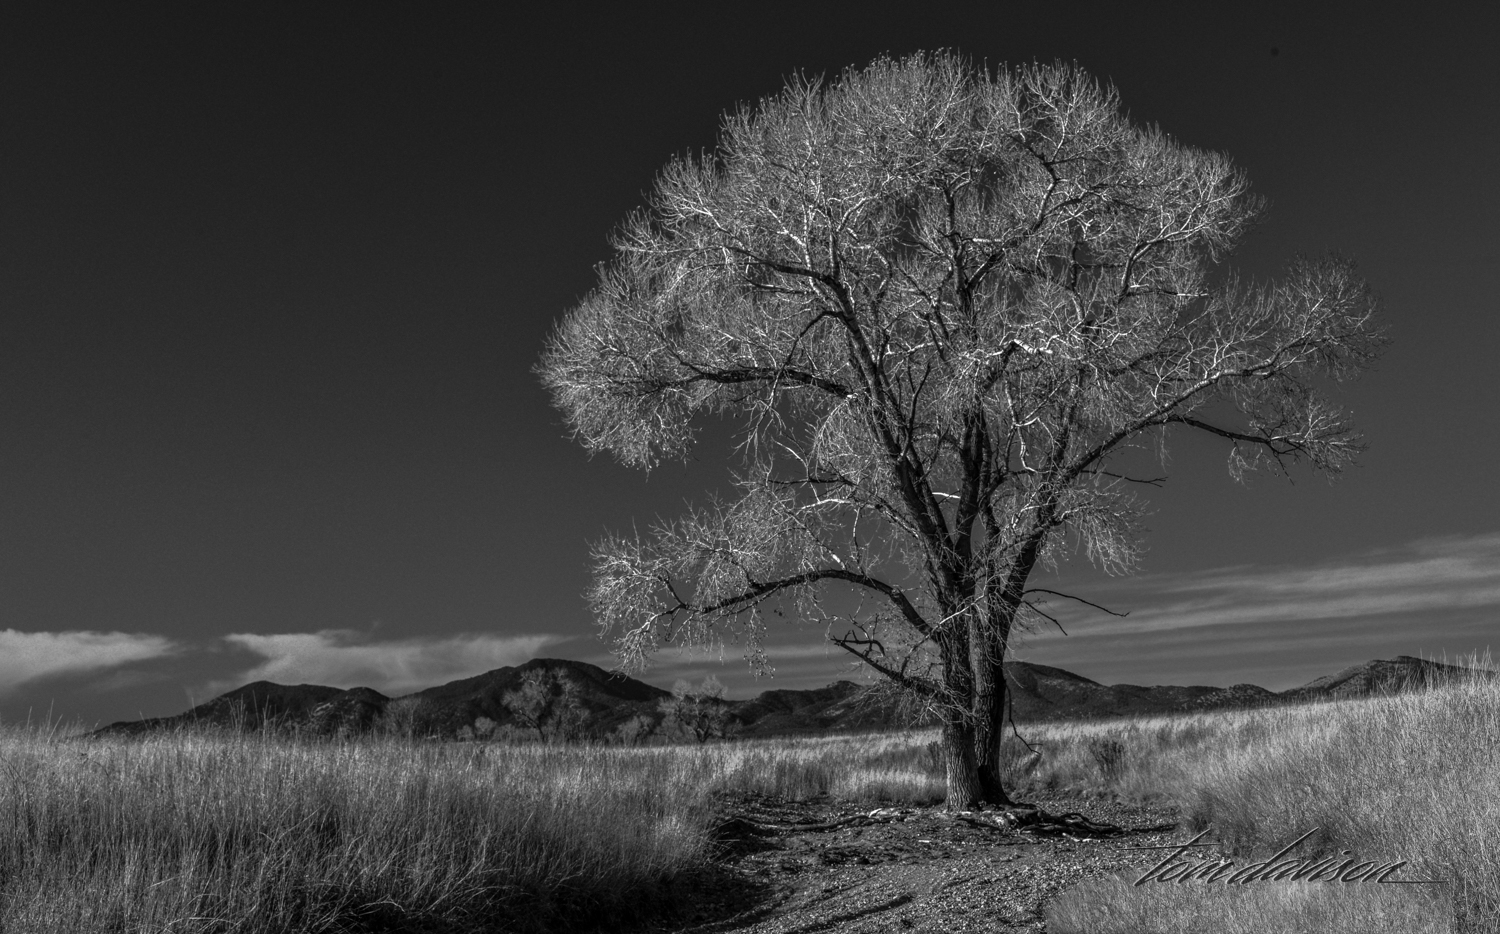 There are many ways to process for a black and white image. Doing so where the branches stand out against a dark sky is one very appealing way of doing it.